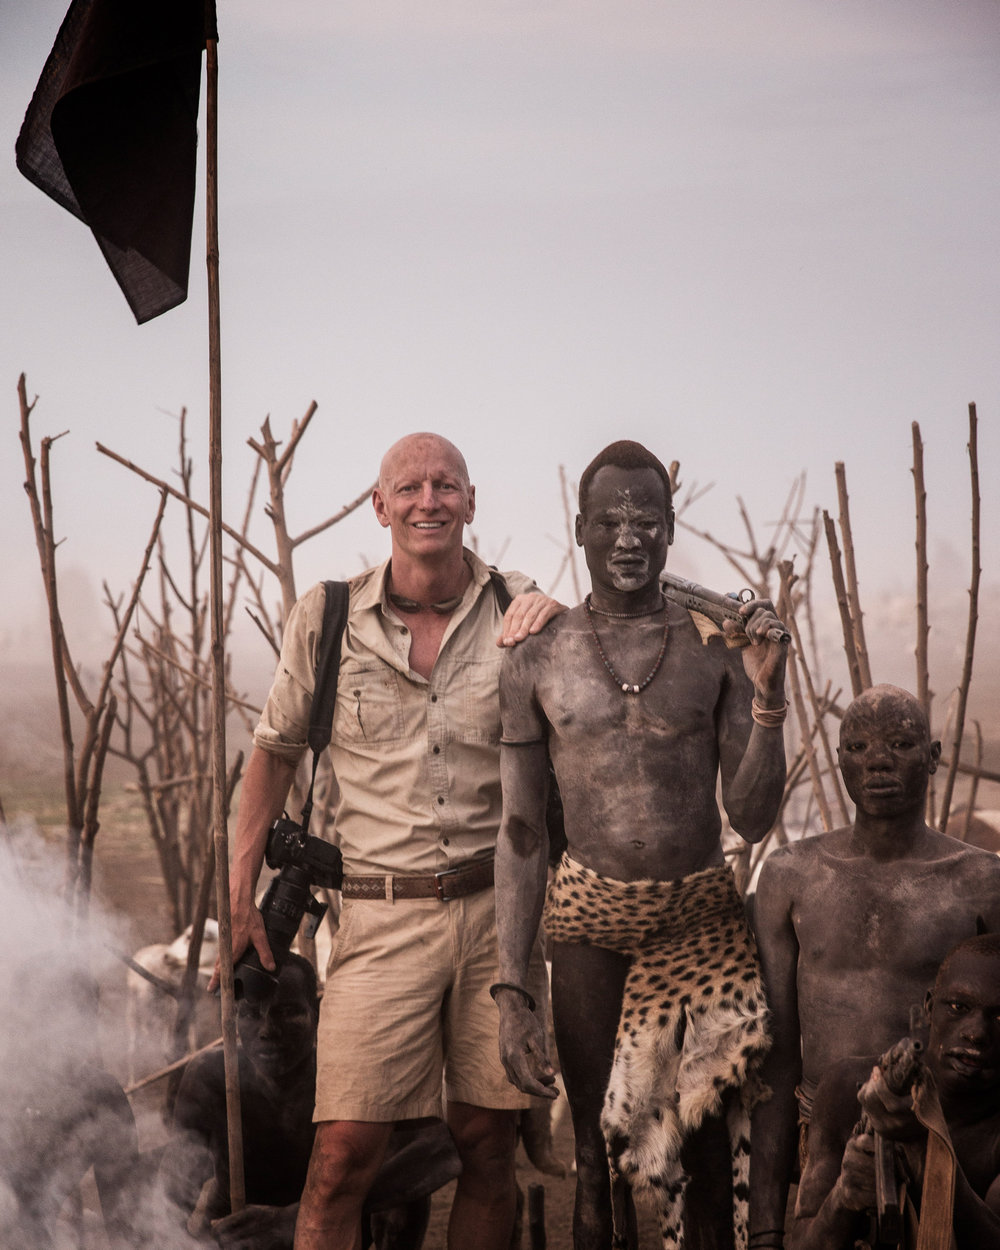 Before they pass away 2 - Mundari South Sudan by Jimmy Nelson.jpg